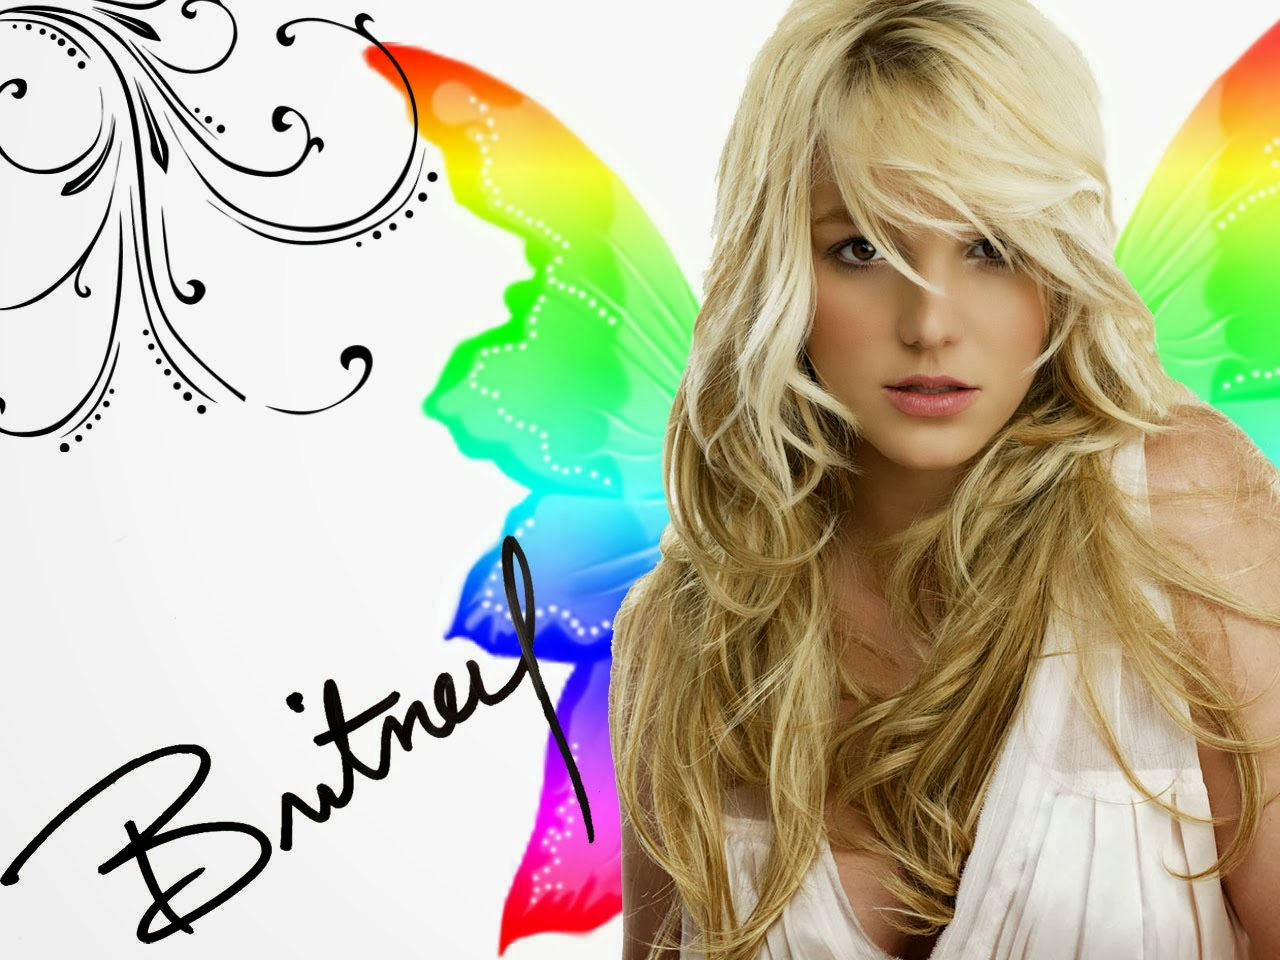 Britney+Spears+Hd+Wallpapers+Free+Download057